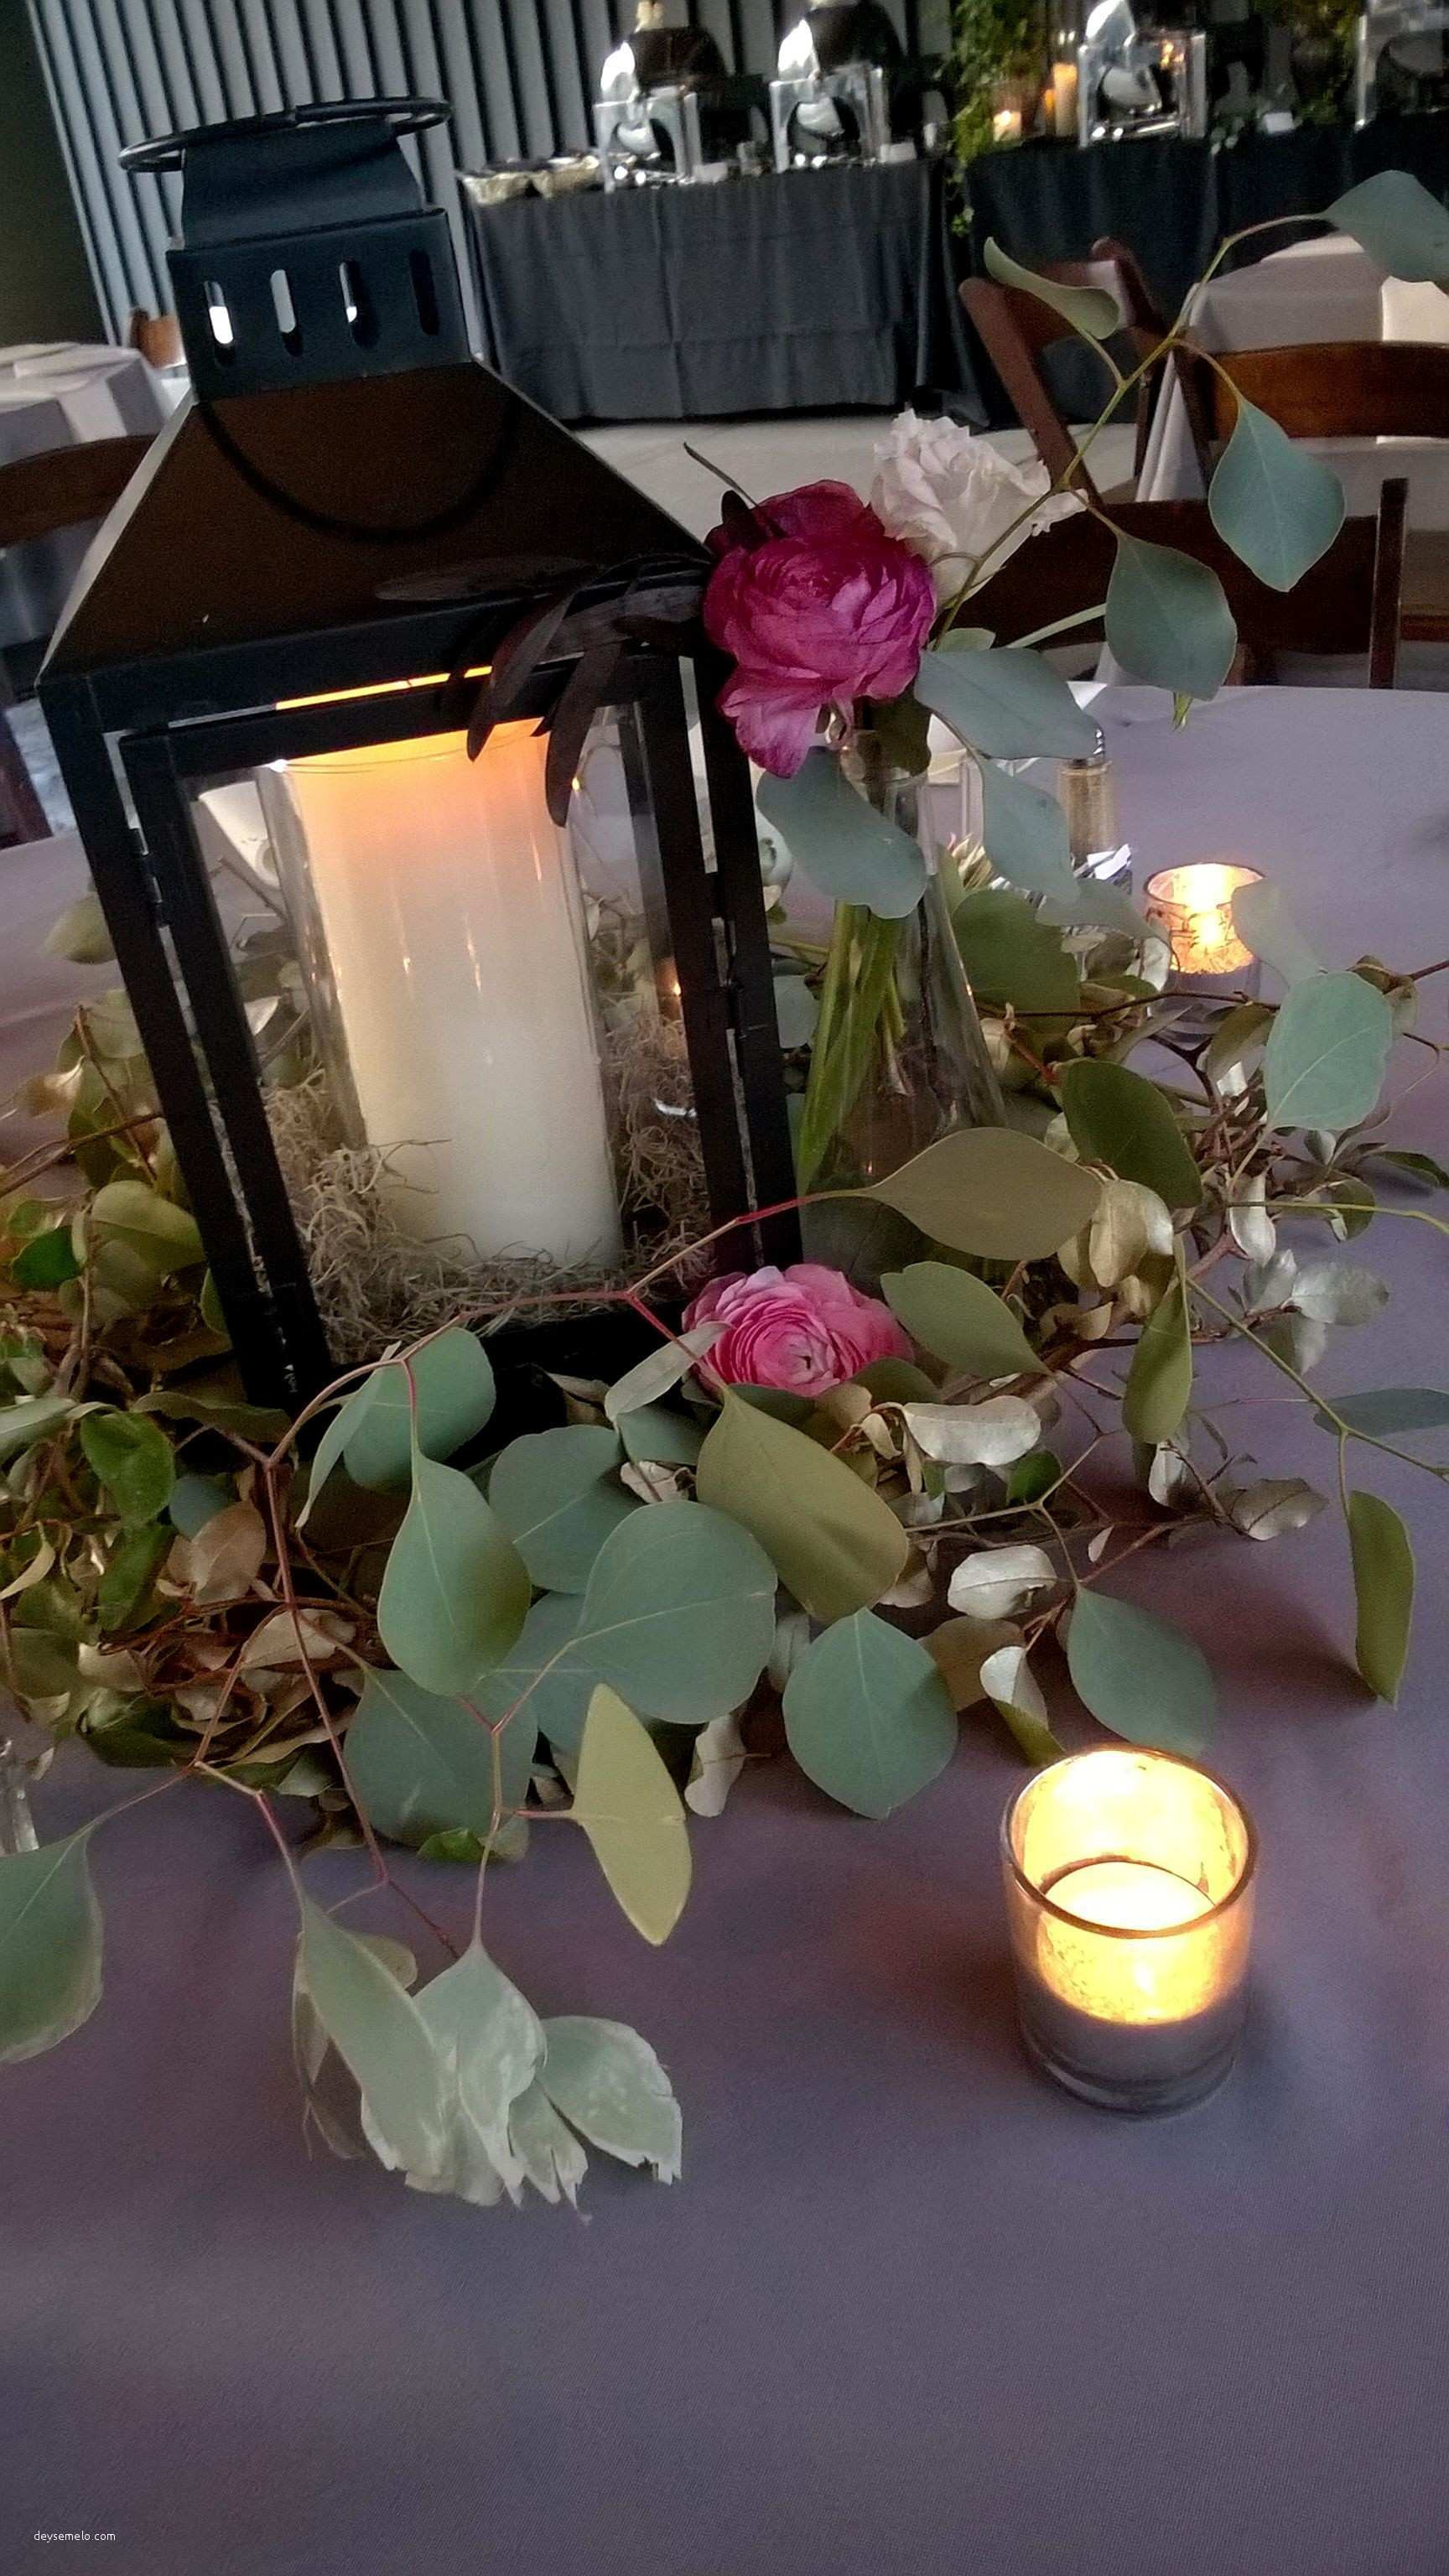 cheap plastic vases for centerpieces of luxury camo wedding supplies cheap and vases vase centerpieces ideas pertaining to beautiful camo wedding supplies cheap of 46 luxury resell wedding decorations